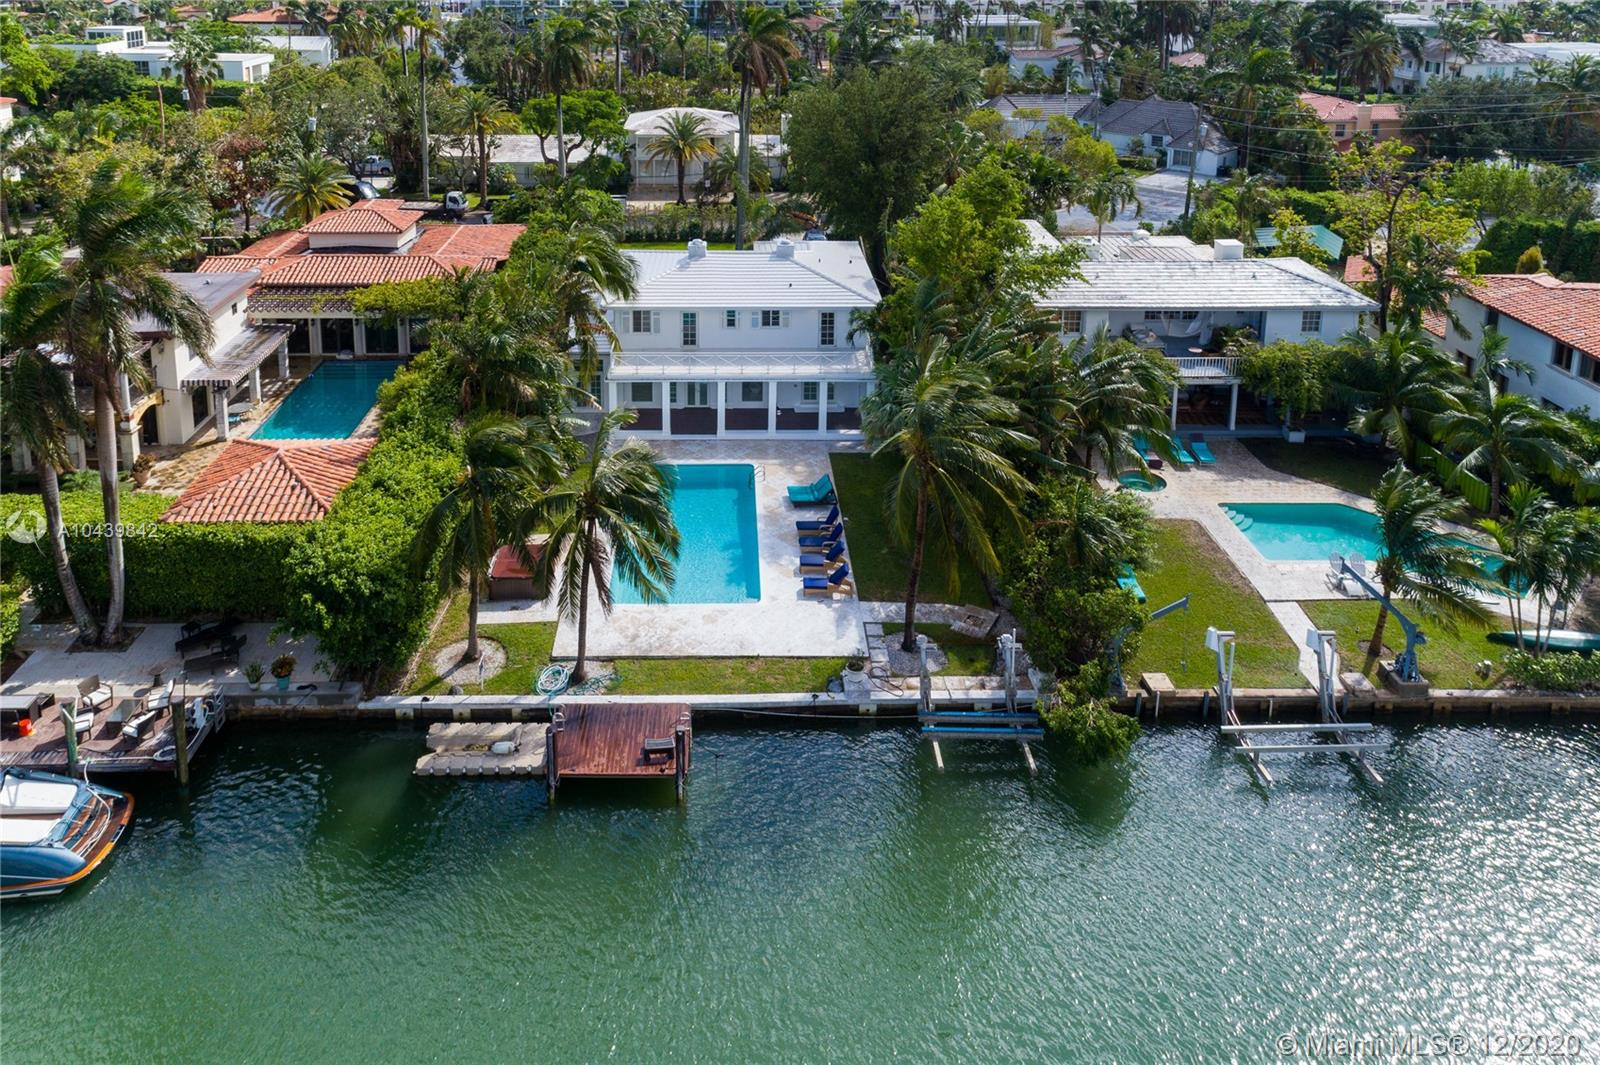 Newly updated Charmer on Gated Sunset Island 4. This is a 5 bed 4 bath home with an additional den that could be used as office/gym. Large terrace off Master upstairs and large covered terrace leading to an oversized pool. Dock, boat lift, and floating jet ski dock along 75' of waterfrontage. Garage and maids quarters. Home has been extensively renovated to include new Kitchen cabinets, new bathrooms, and freshly painted inside-out. Quiet street, close to Lincoln Road and Sunset Harbor shops and restaurants. Location allows you to experience a true South Beach lifestyle.